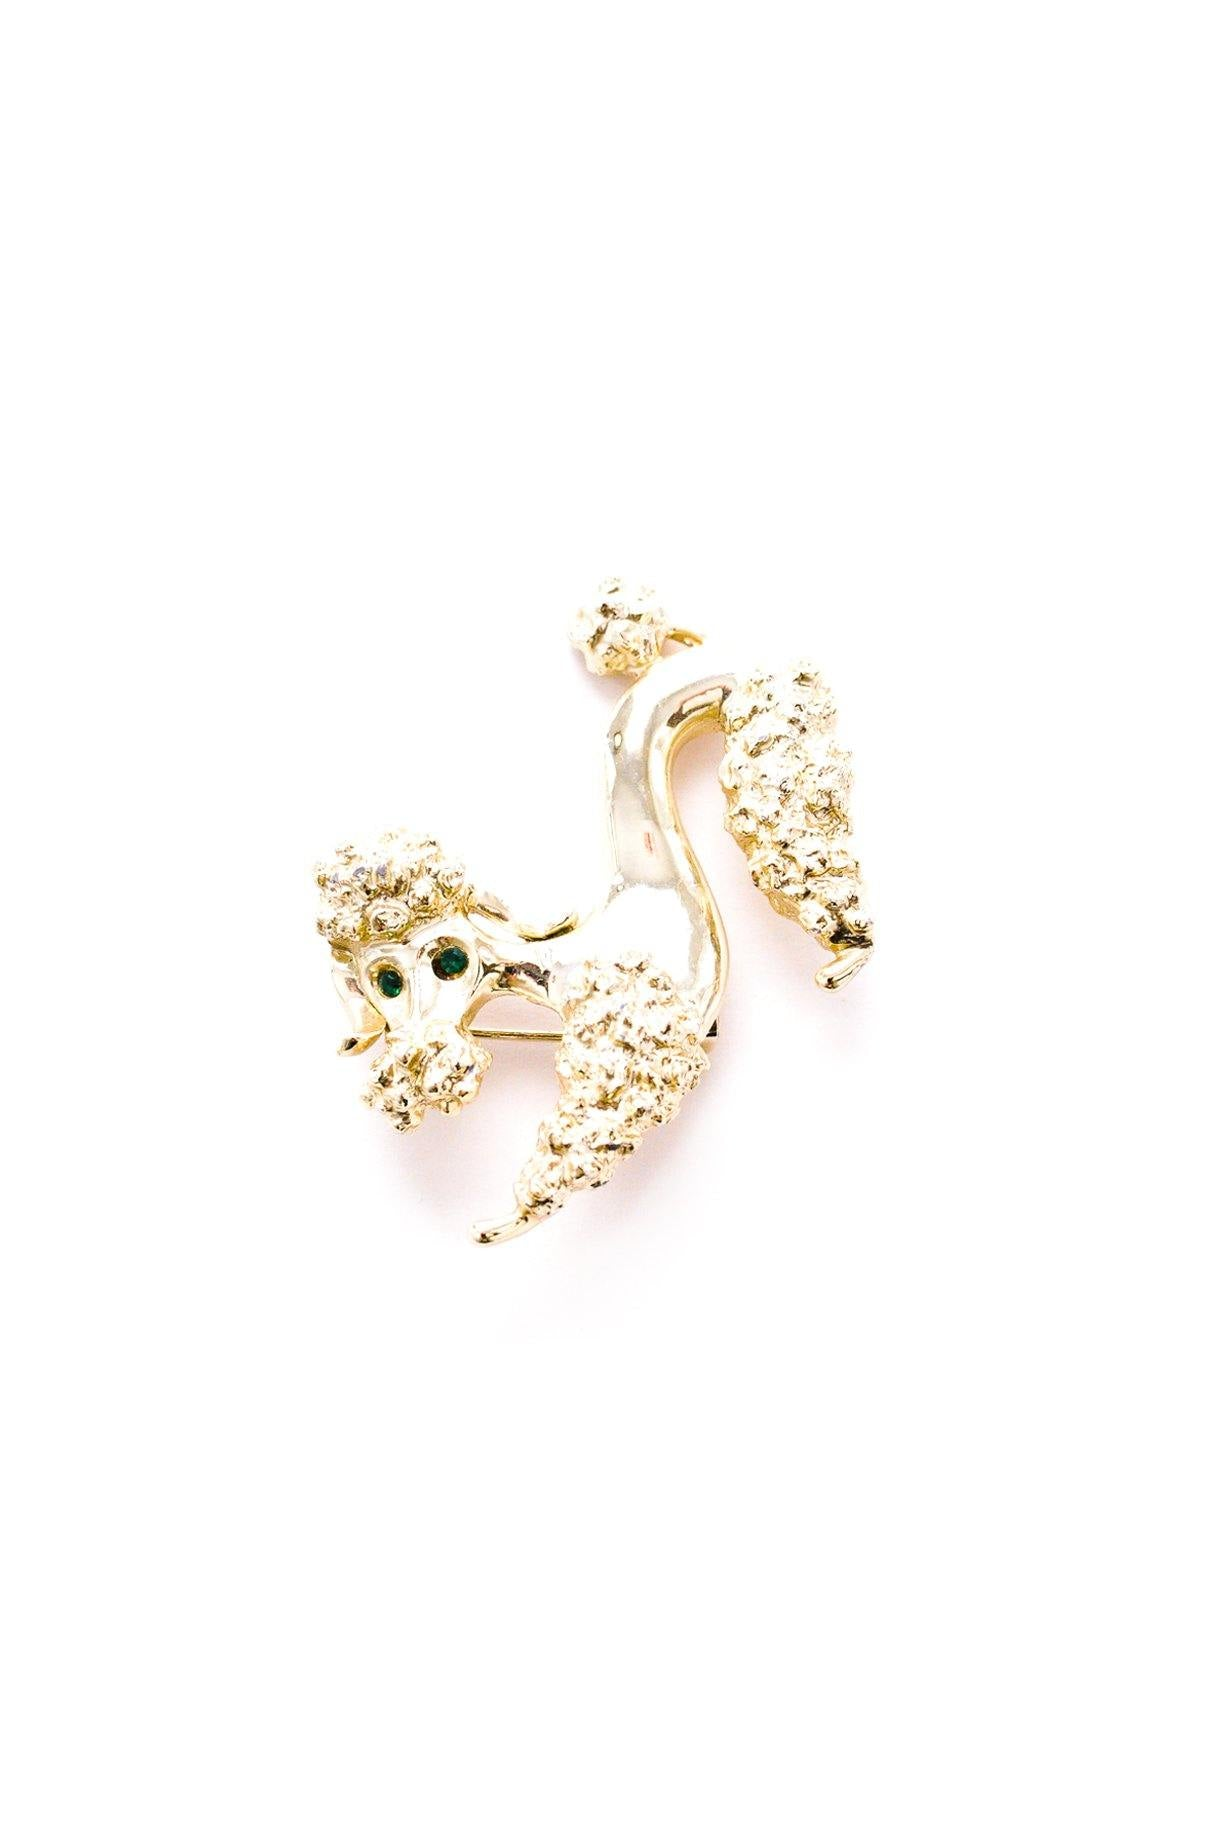 Vintage Gerry's Gold Poodle Brooch from Sweet & Spark